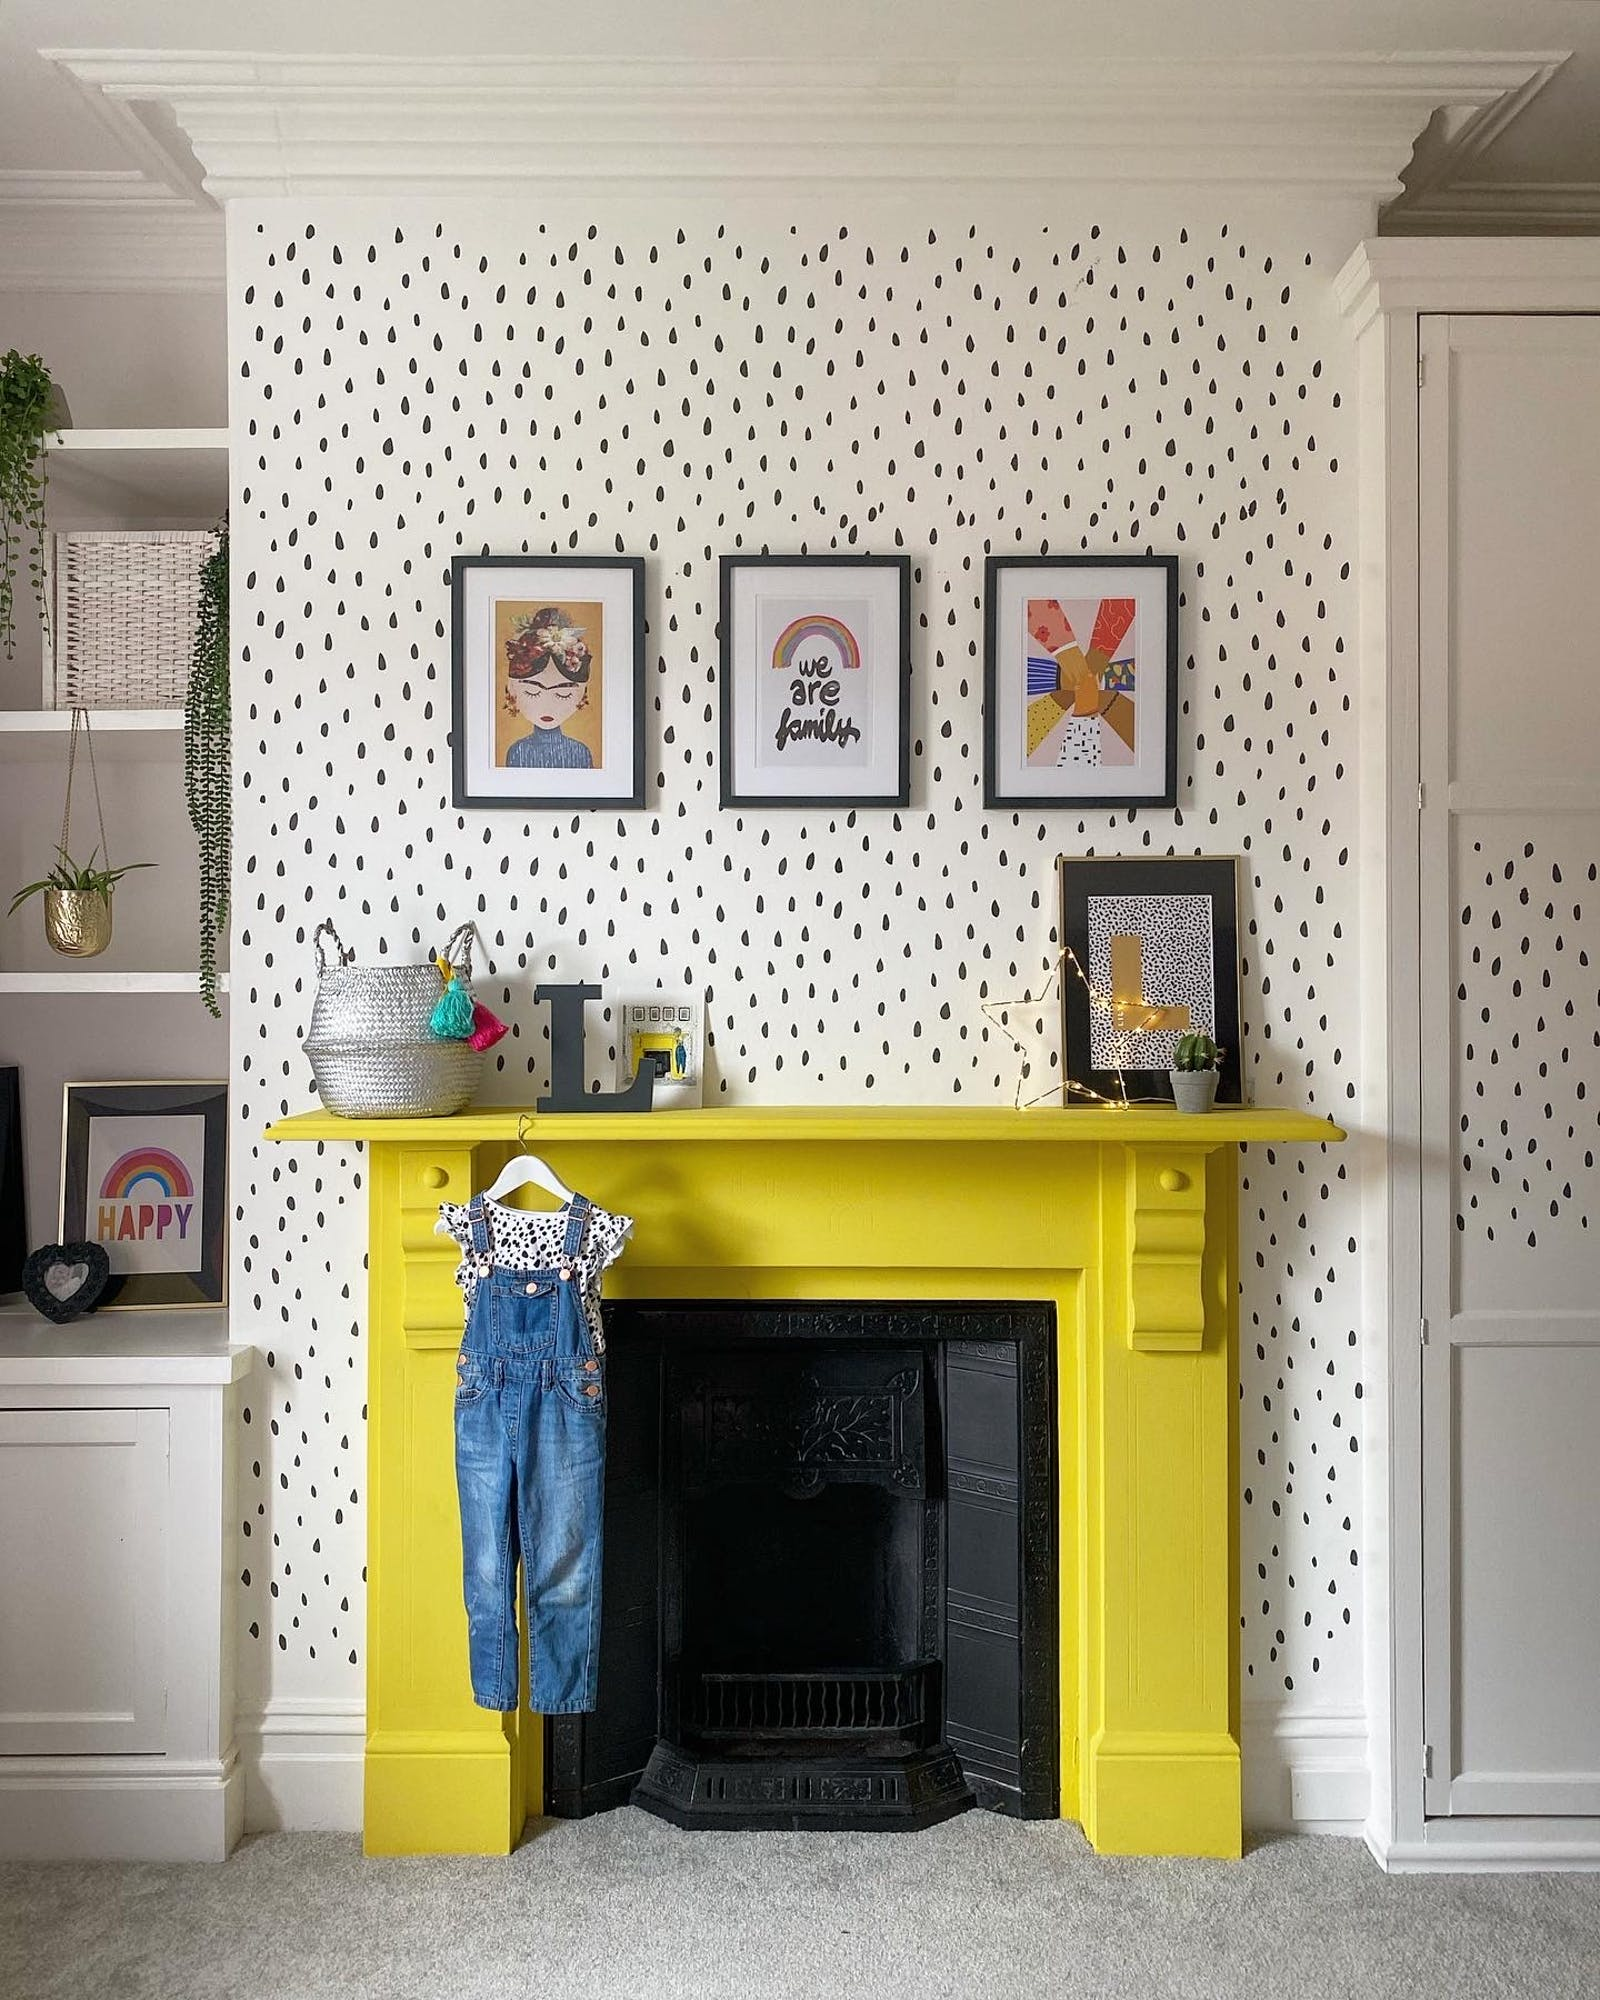 Patterned wall with wall art and a fireplace painted in yellow